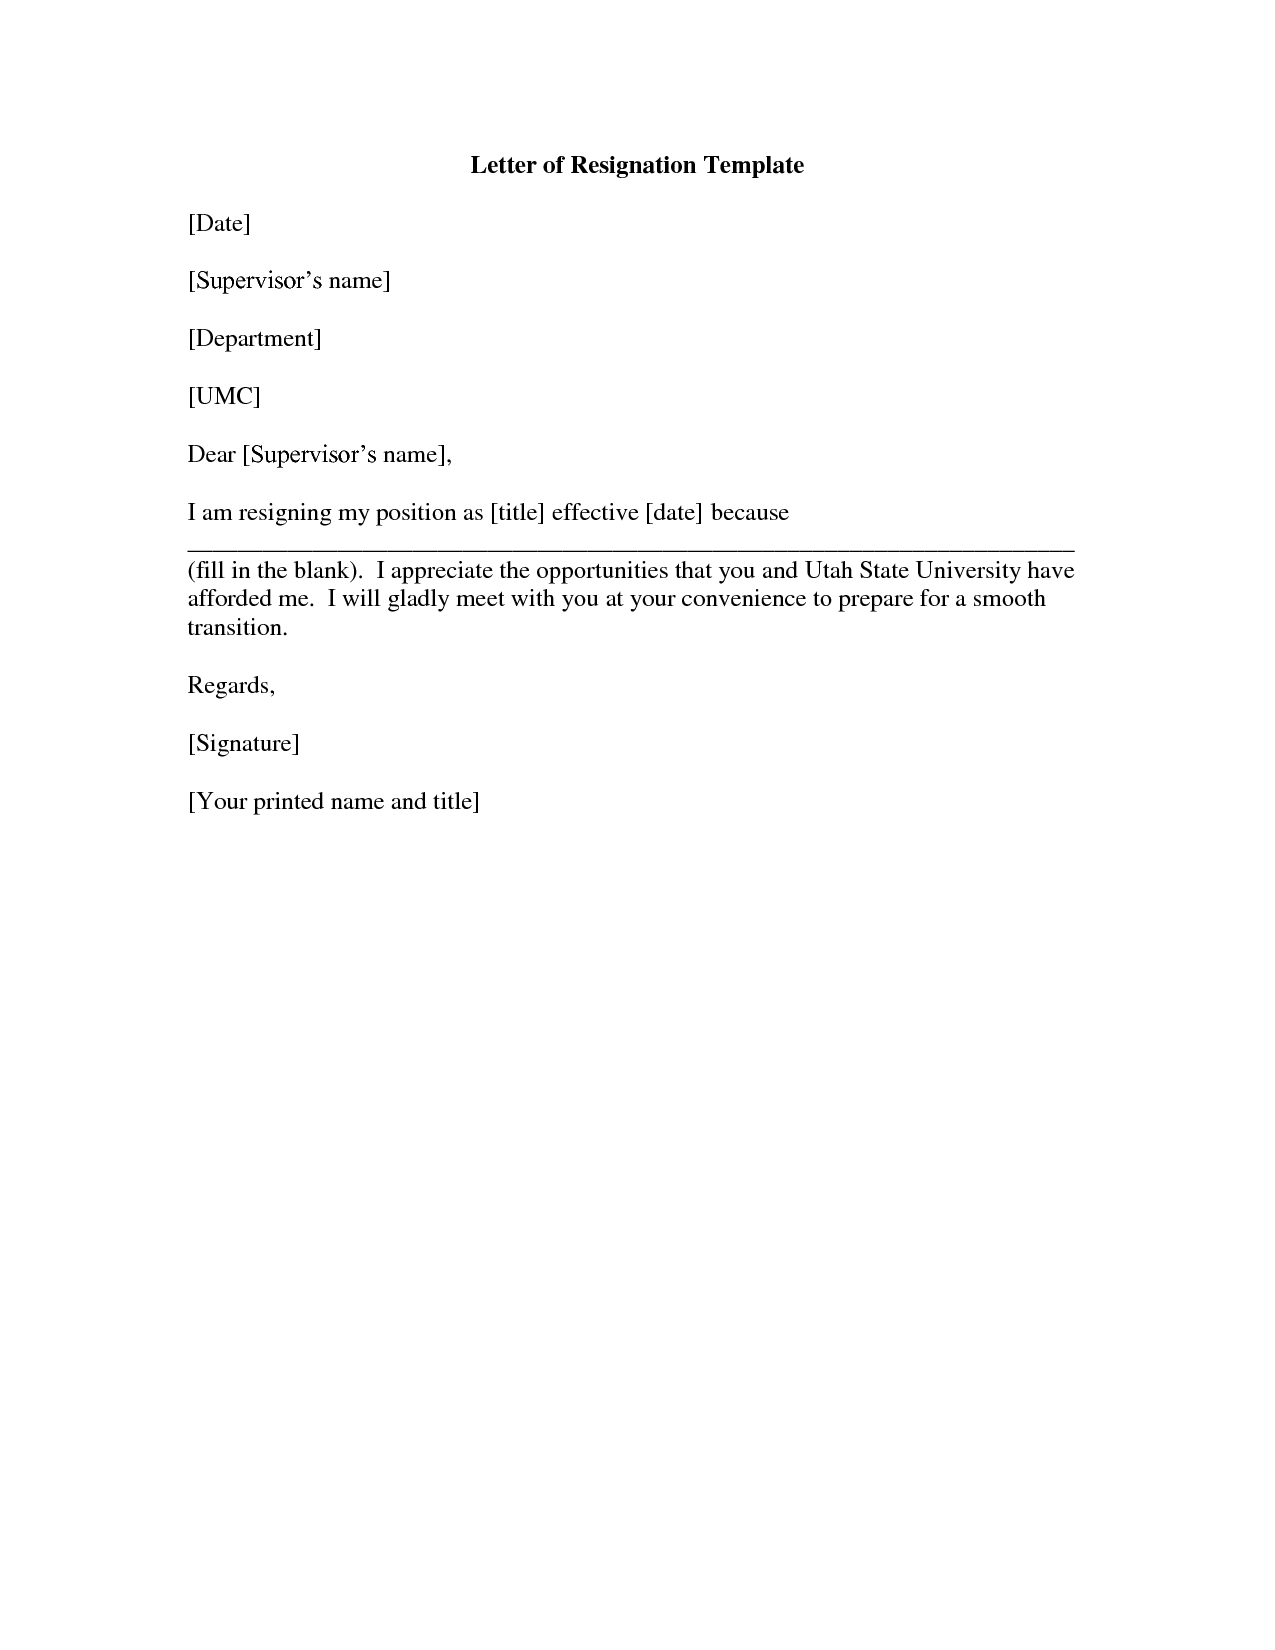 Resignation Letter Sample Word Document microsoft word certificate – Free Letter of Resignation Template Word